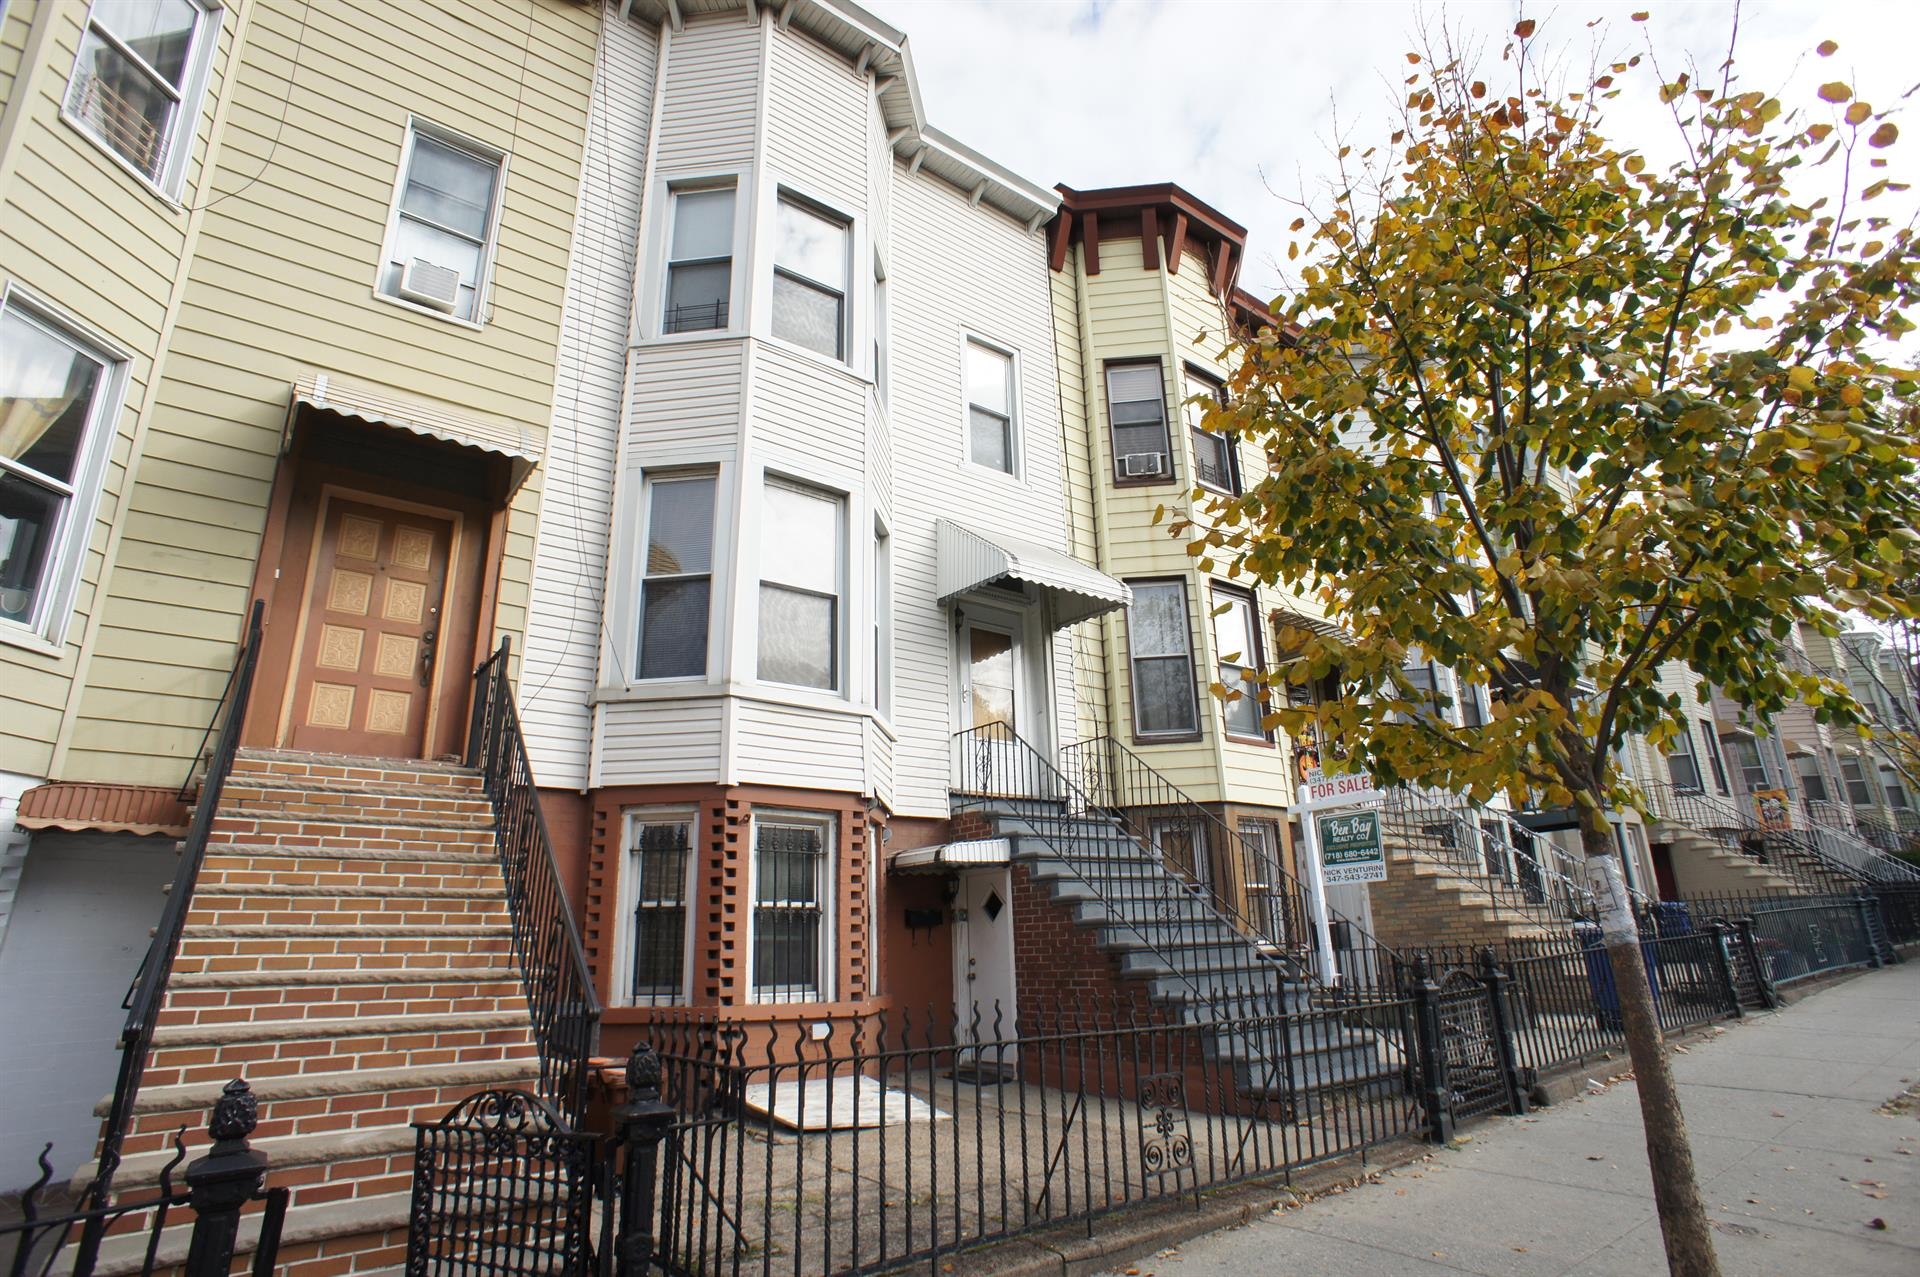 Additional photo for property listing at 331 55th Street  Brooklyn, New York 11220 United States